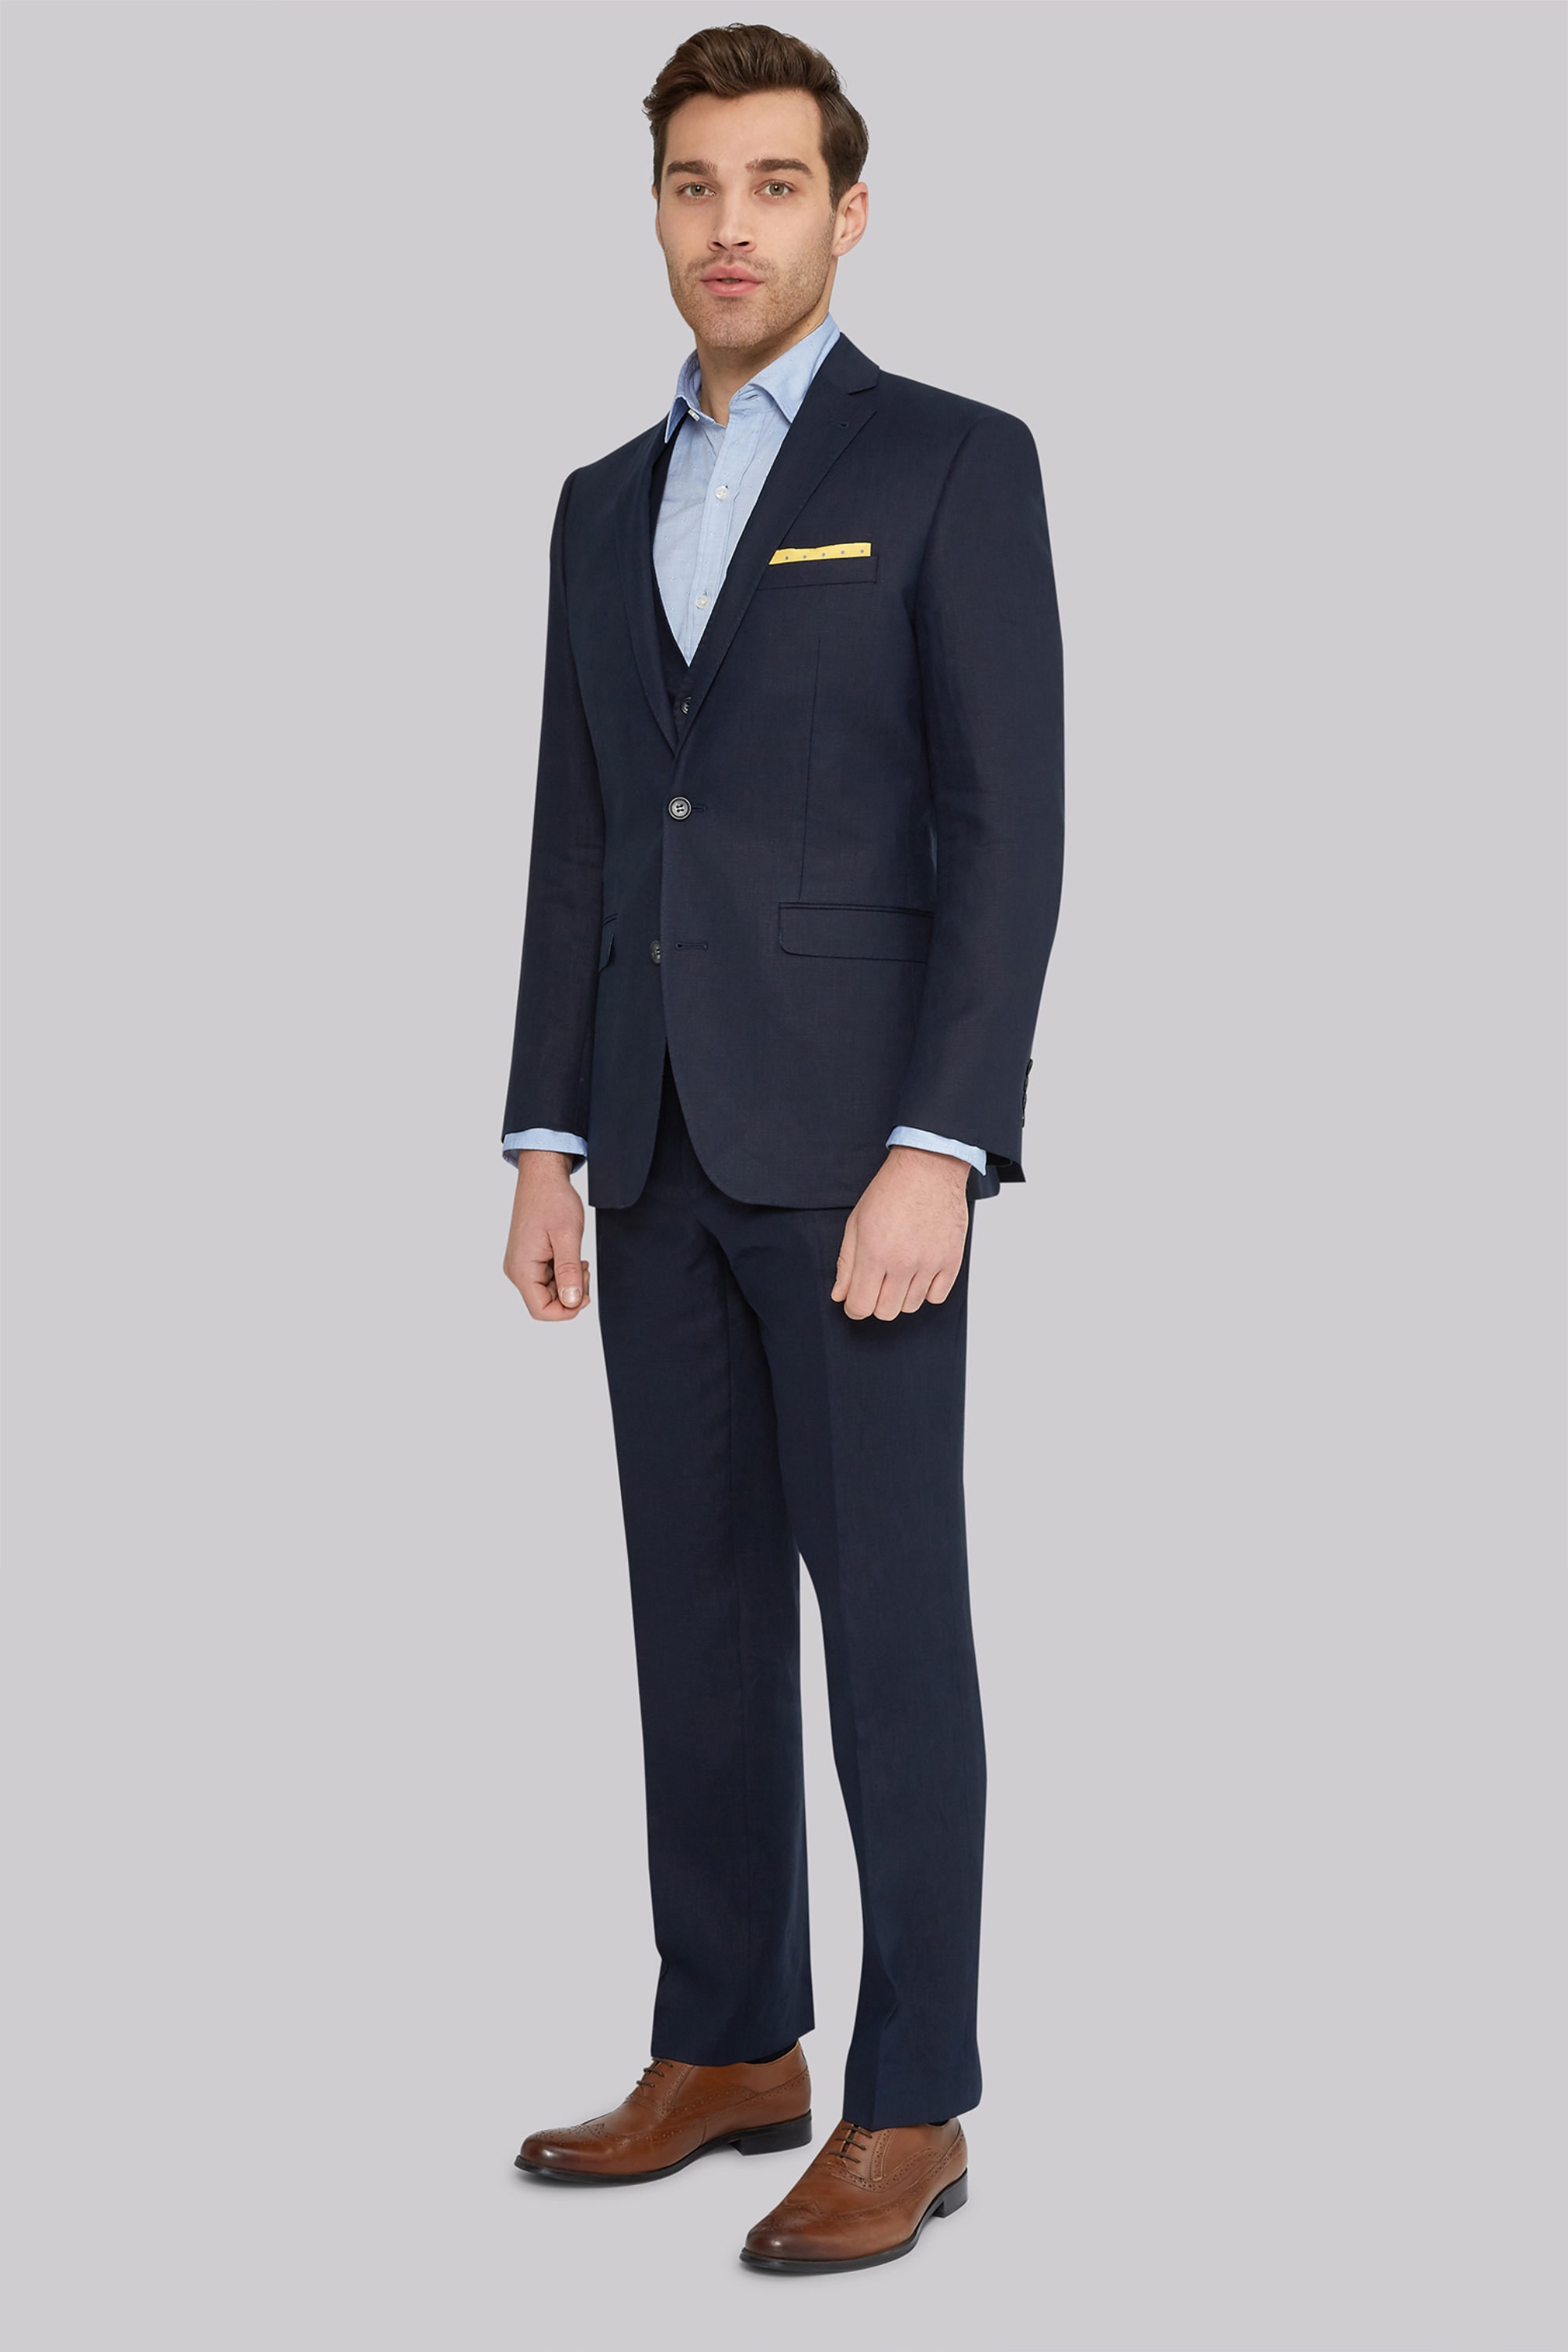 Buy Calvin Klein Blue Postman Extreme Slim Fit Suit and other Midnight Blue Suits at tiospecicin.gq Get FREE Shipping on orders $99+.